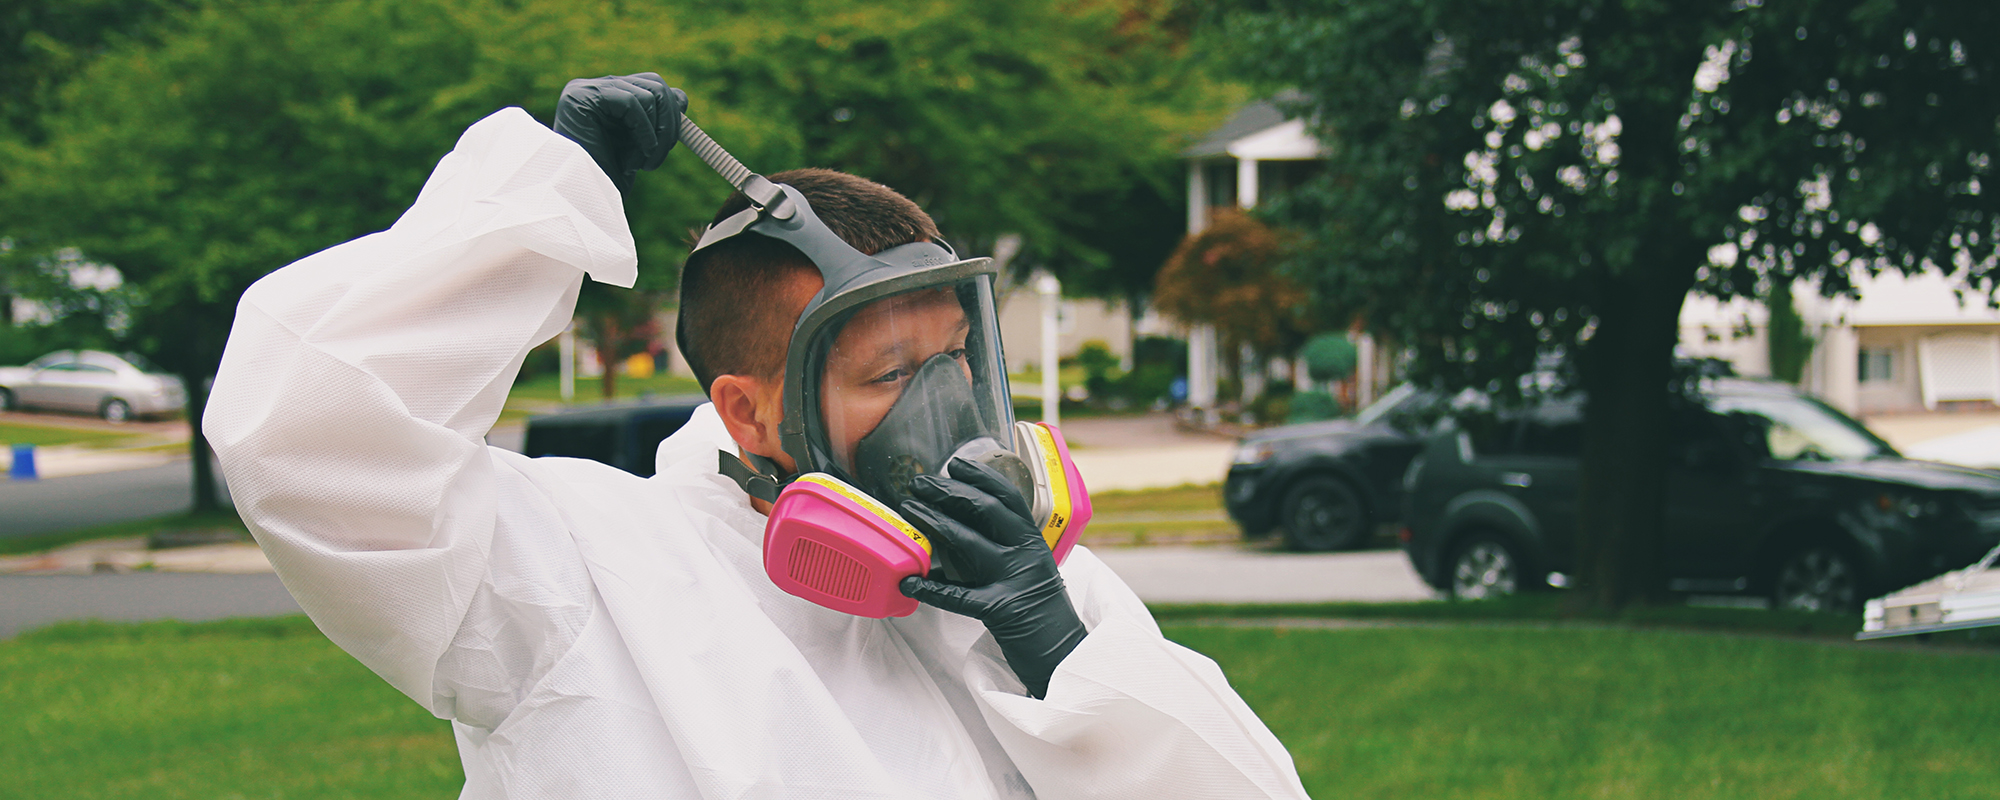 mold-remediation-riverside-nj